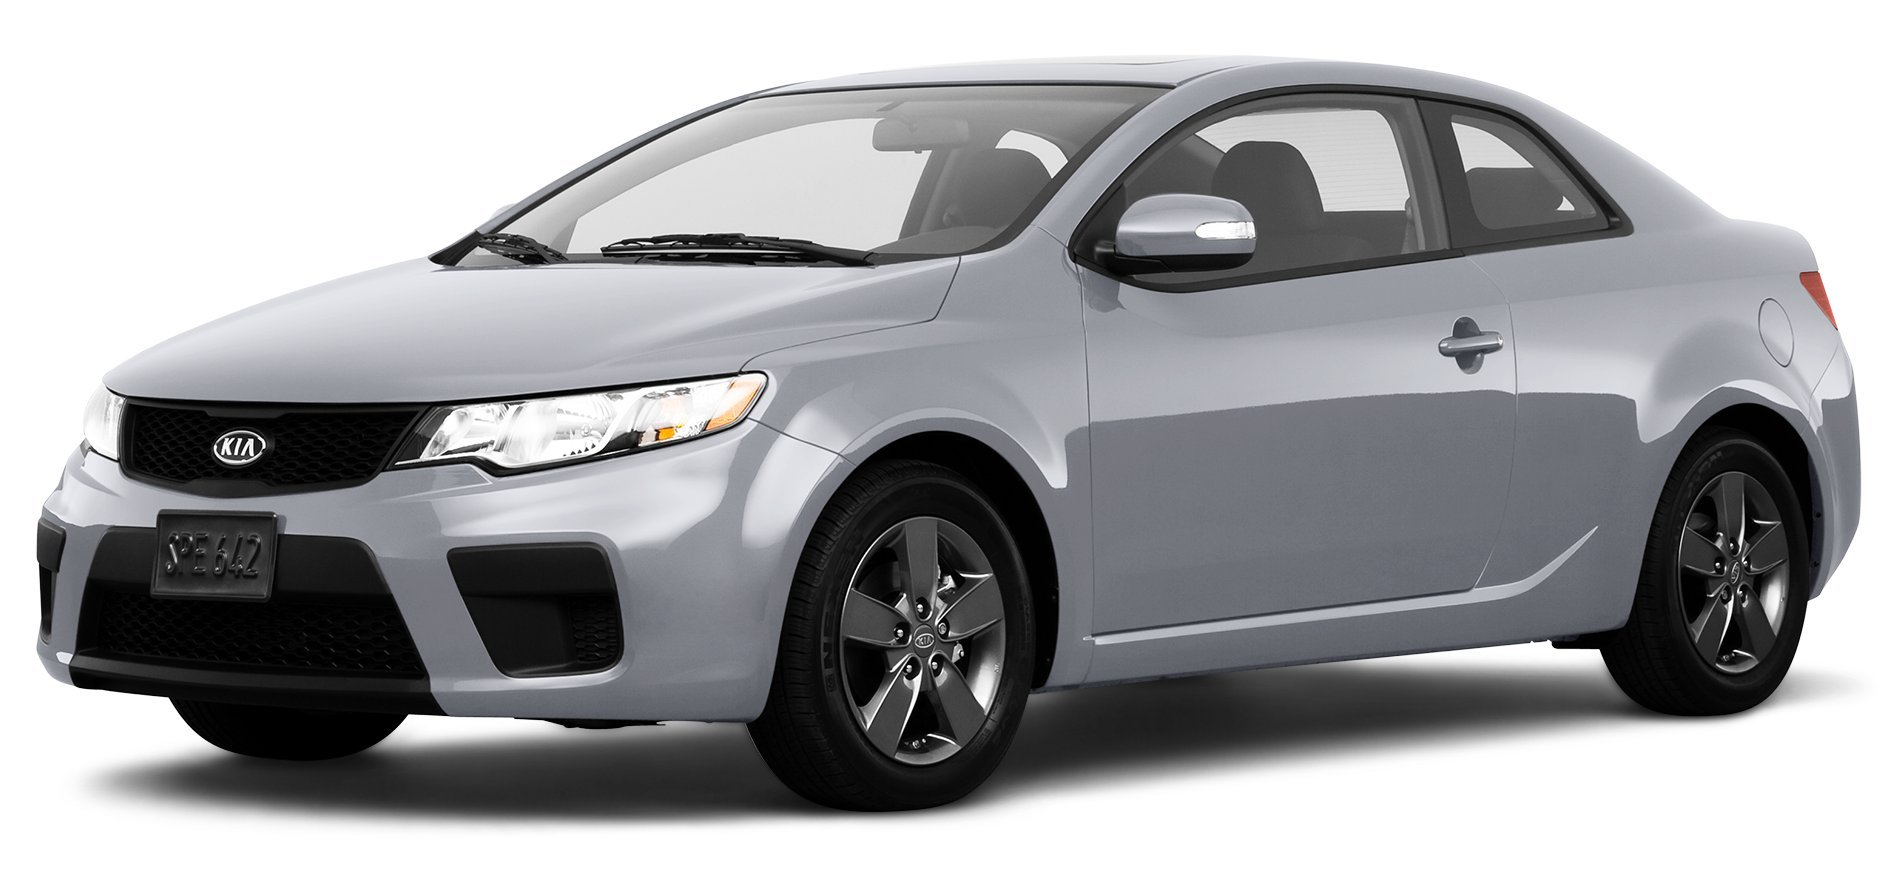 2010 kia forte koup reviews images and specs. Black Bedroom Furniture Sets. Home Design Ideas